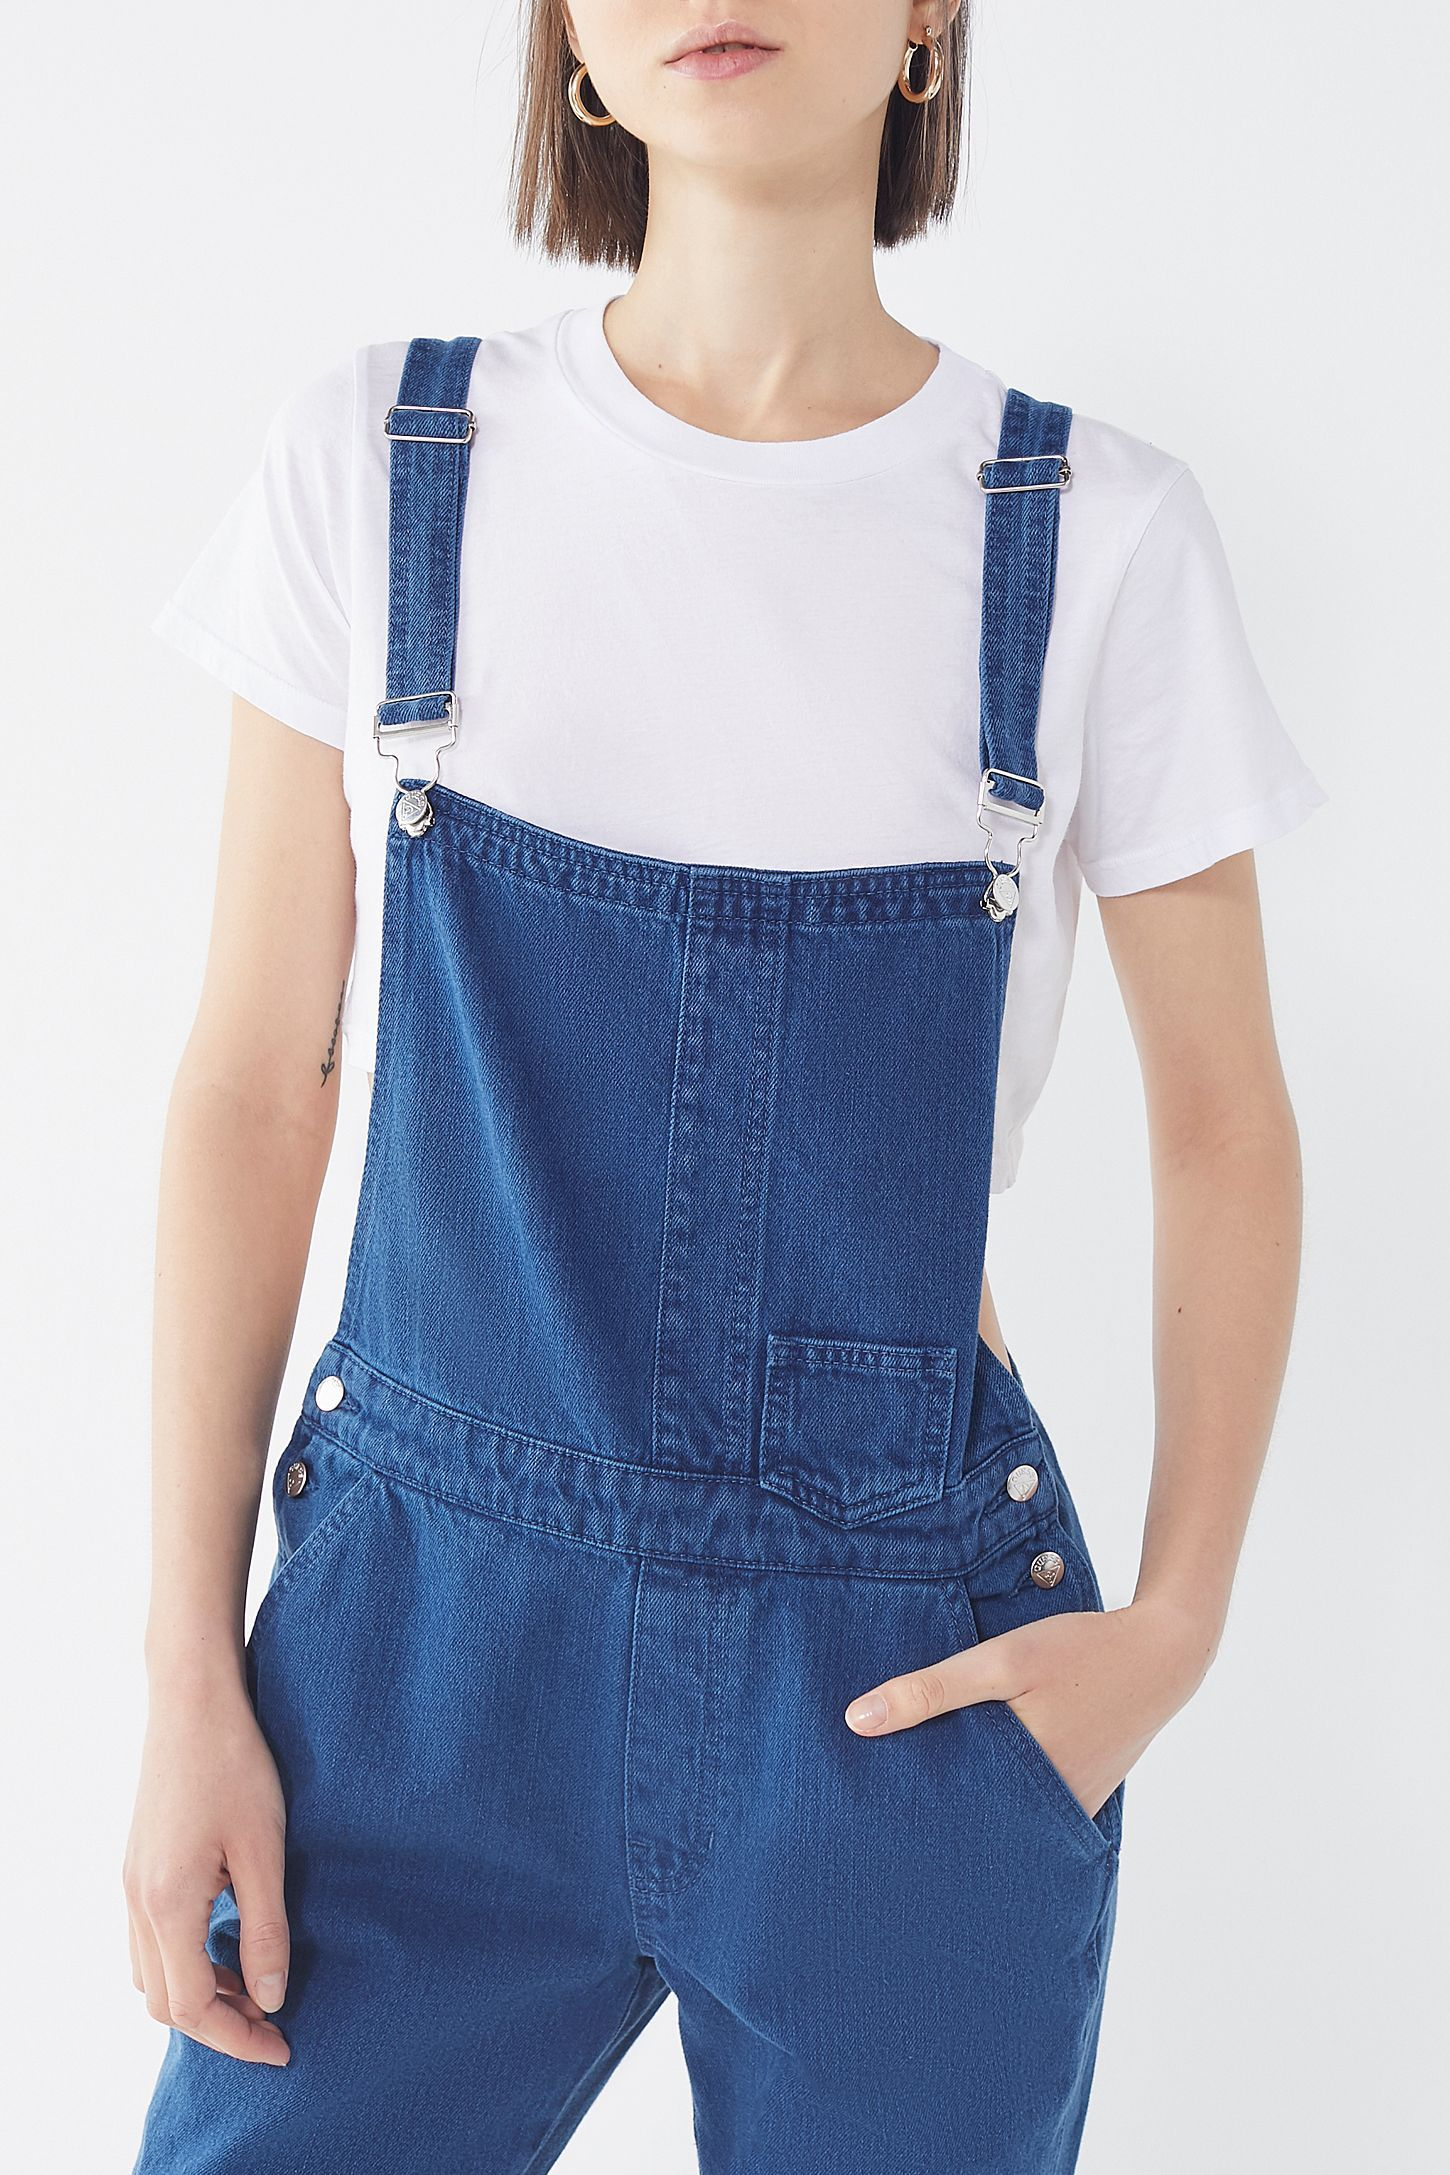 92c532db264 Slide View  5  GUESS UO Exclusive Denim Overall Overalls